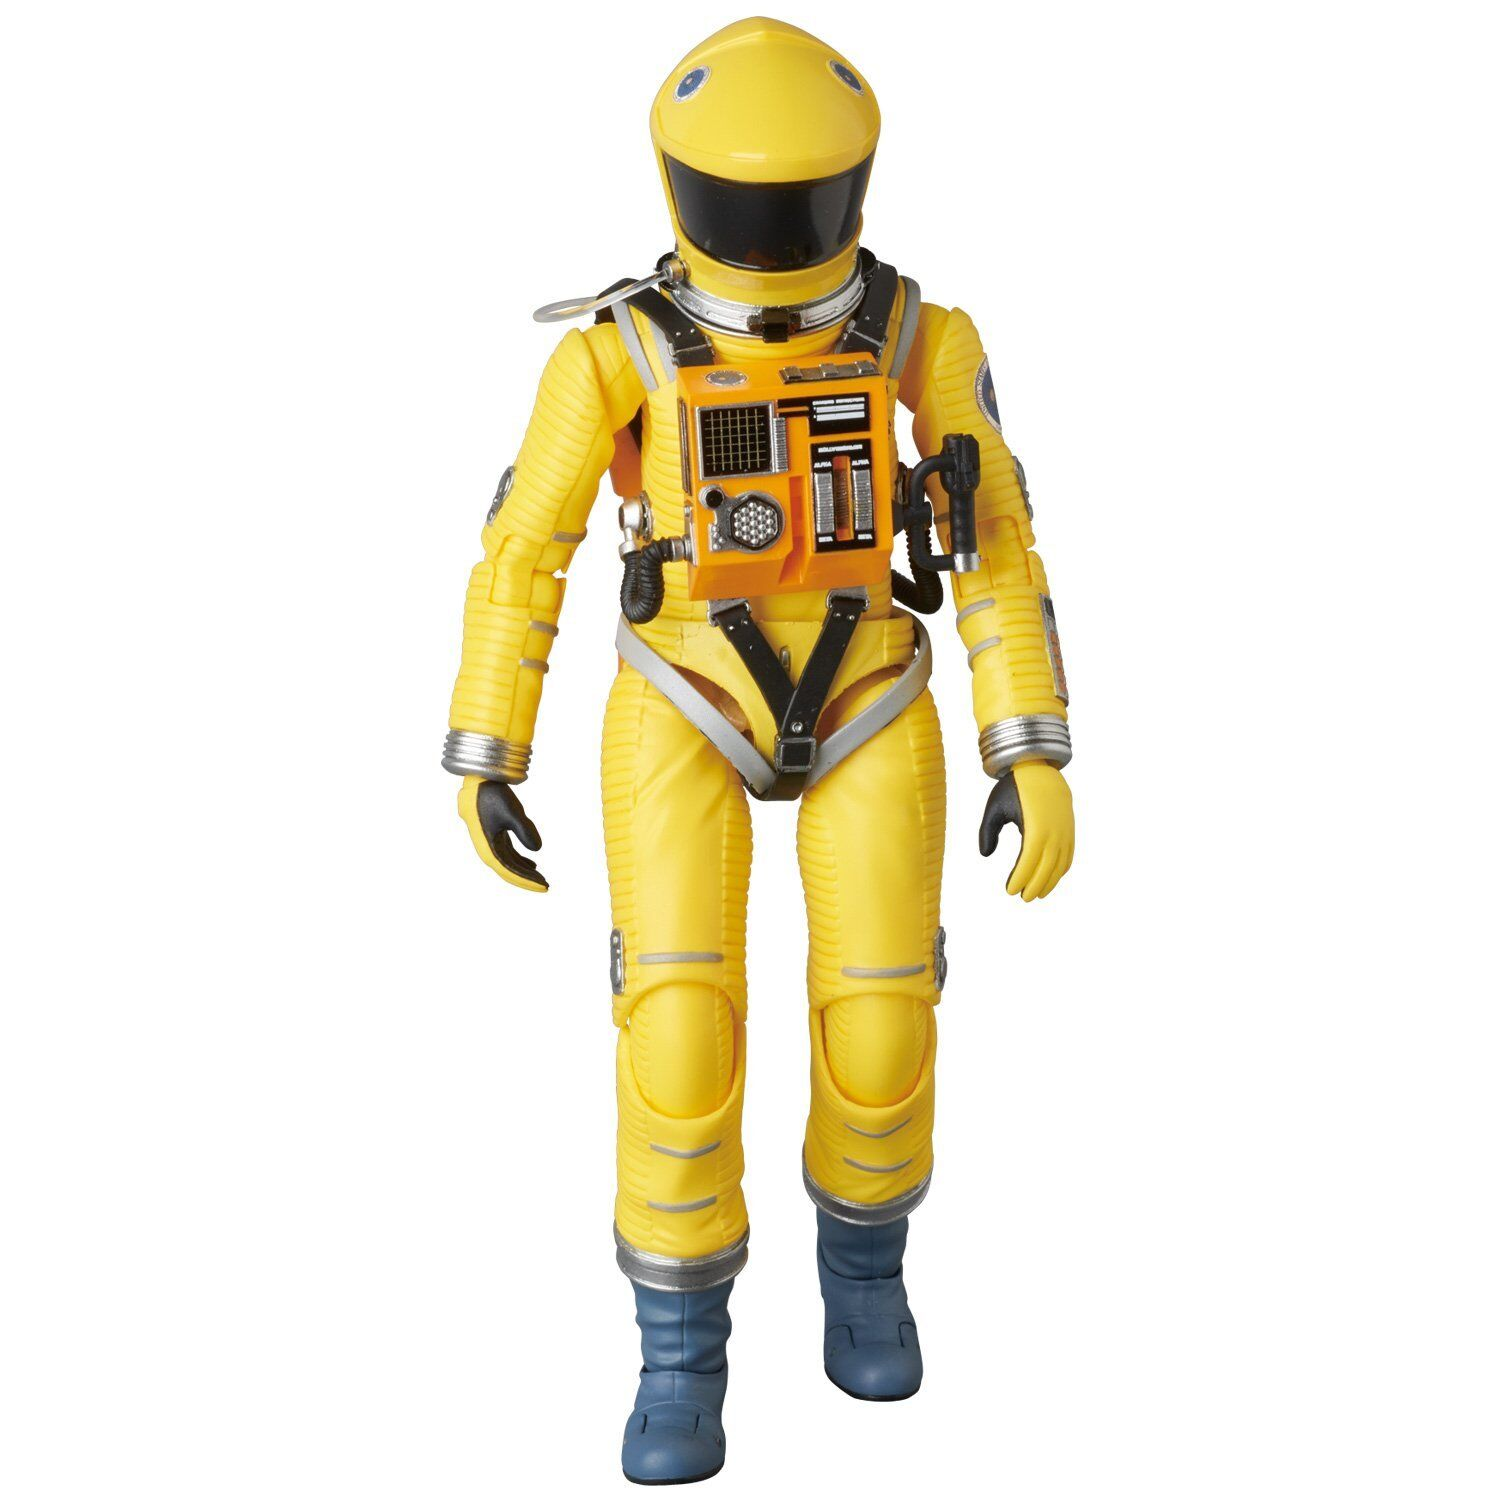 MAFEX SPACE SUIT YELLOW Ver. Japan